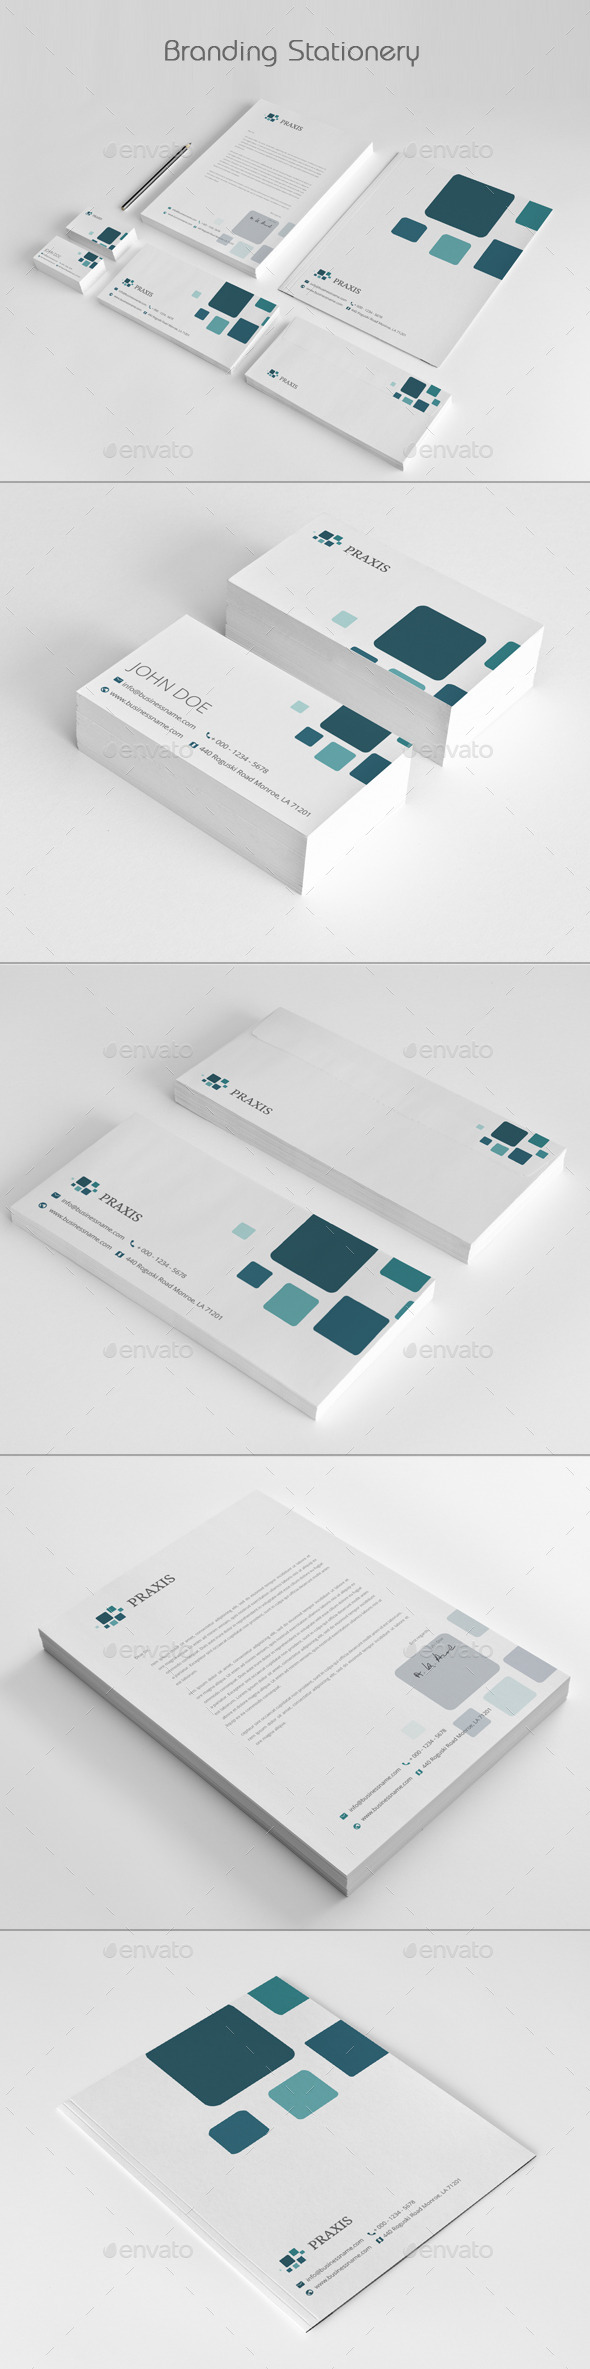 GraphicRiver Branding Stationery 11921488